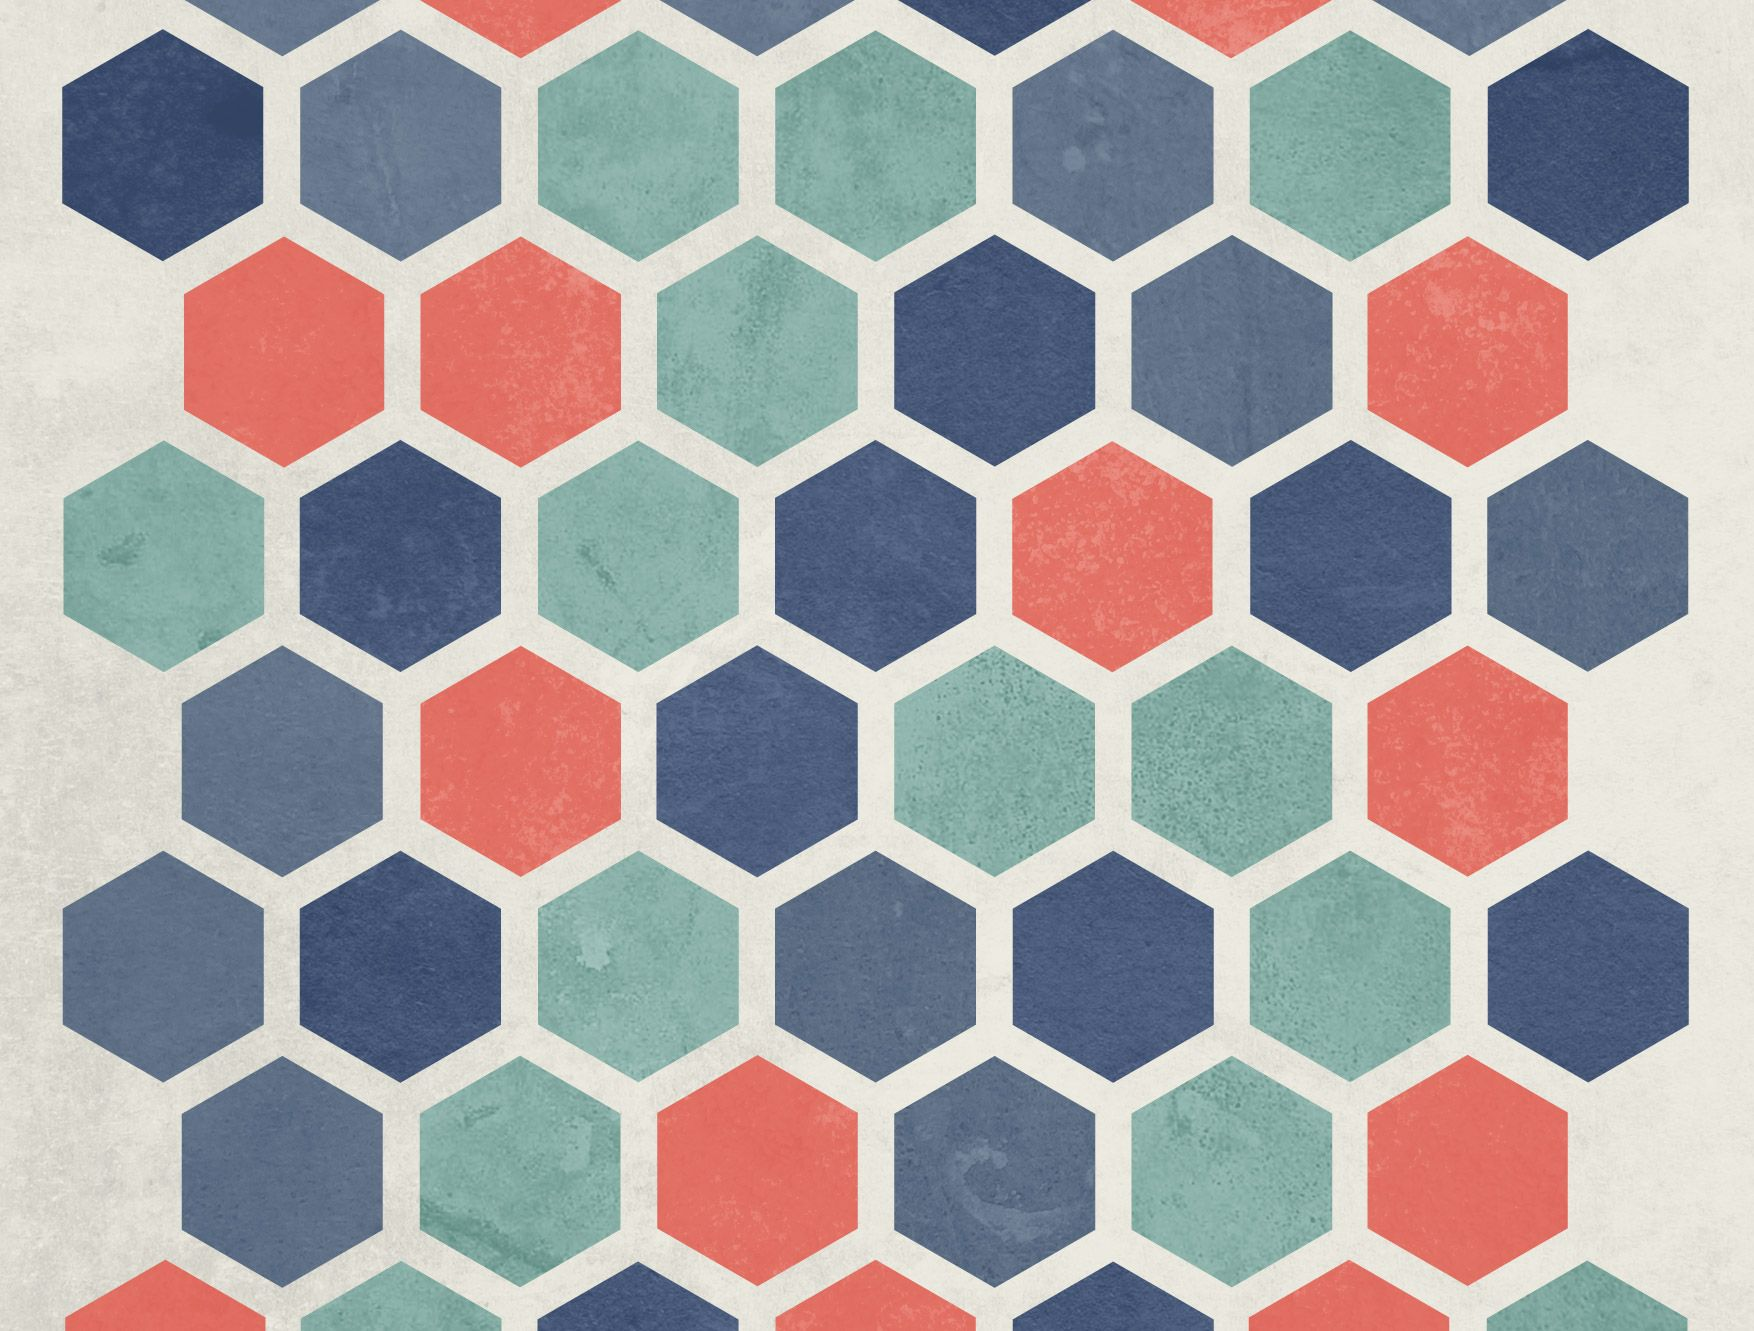 Poster design tools - How To Create An Abstract Geometric Poster Design